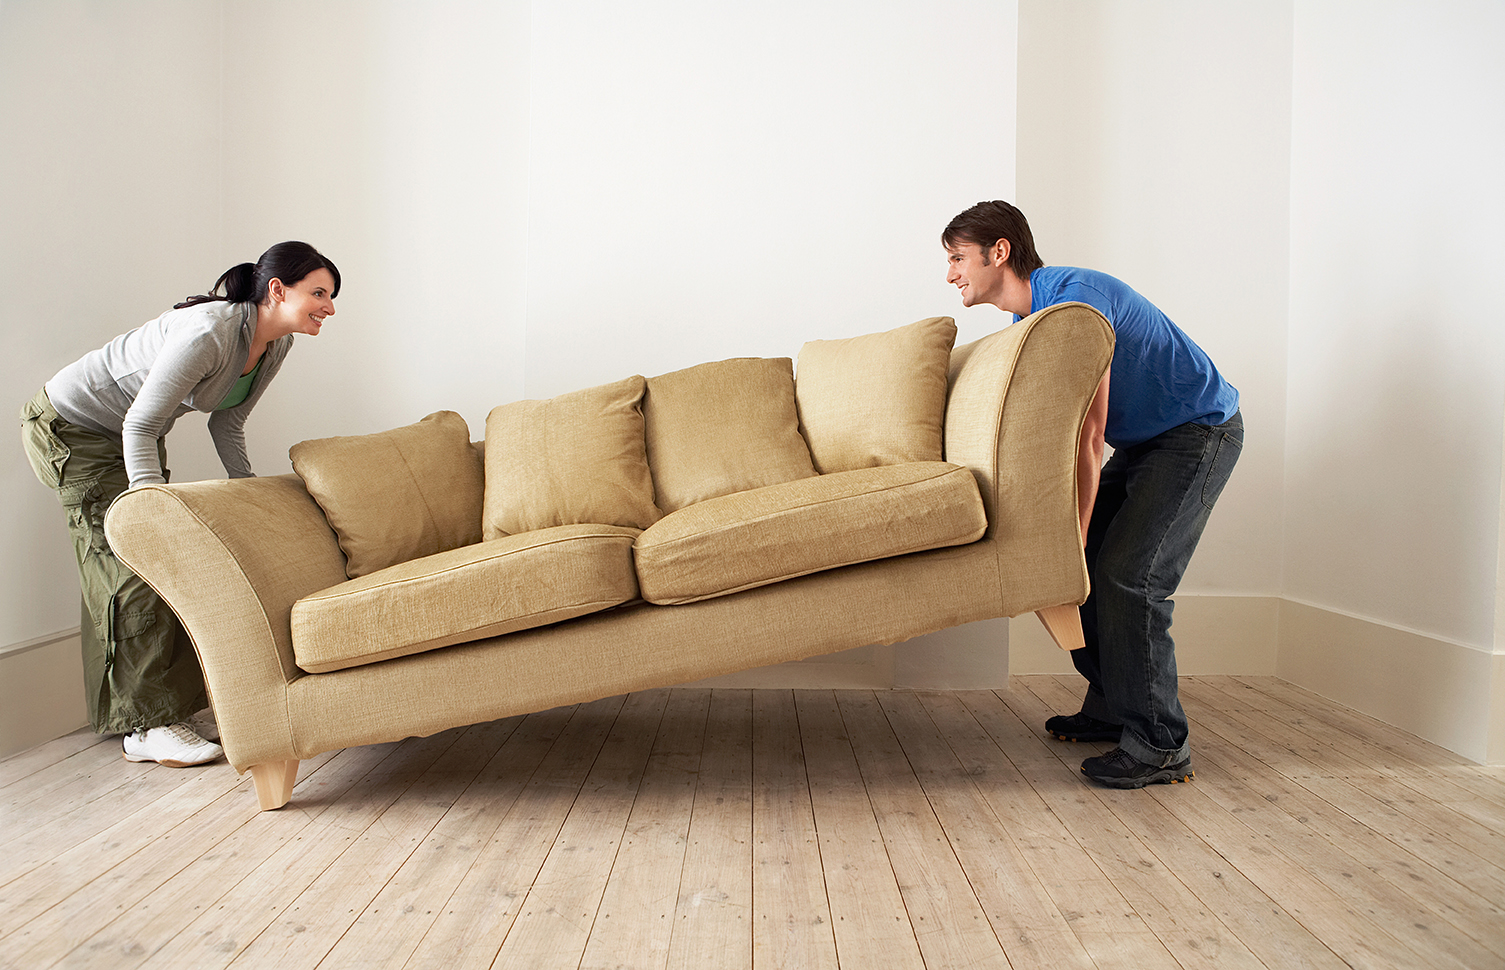 http://www.victormini.com/wp-content/uploads/2014/08/couple-lifting-couch.jpg